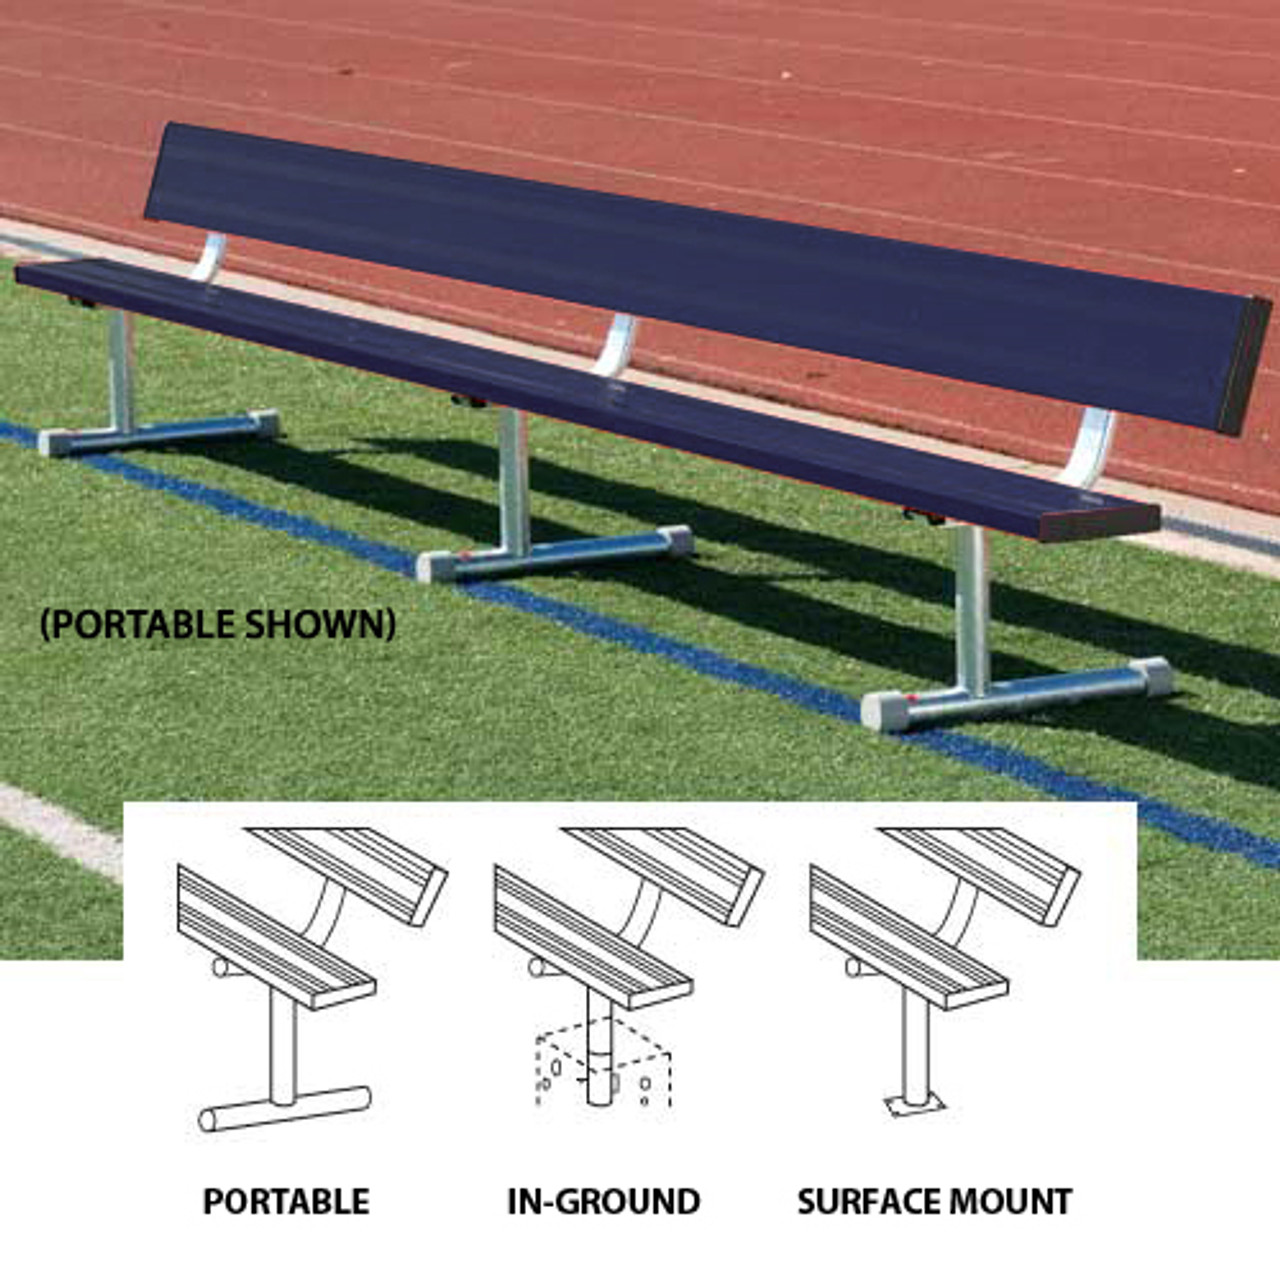 15' Aluminum Powder Coated Player's Bench with Back